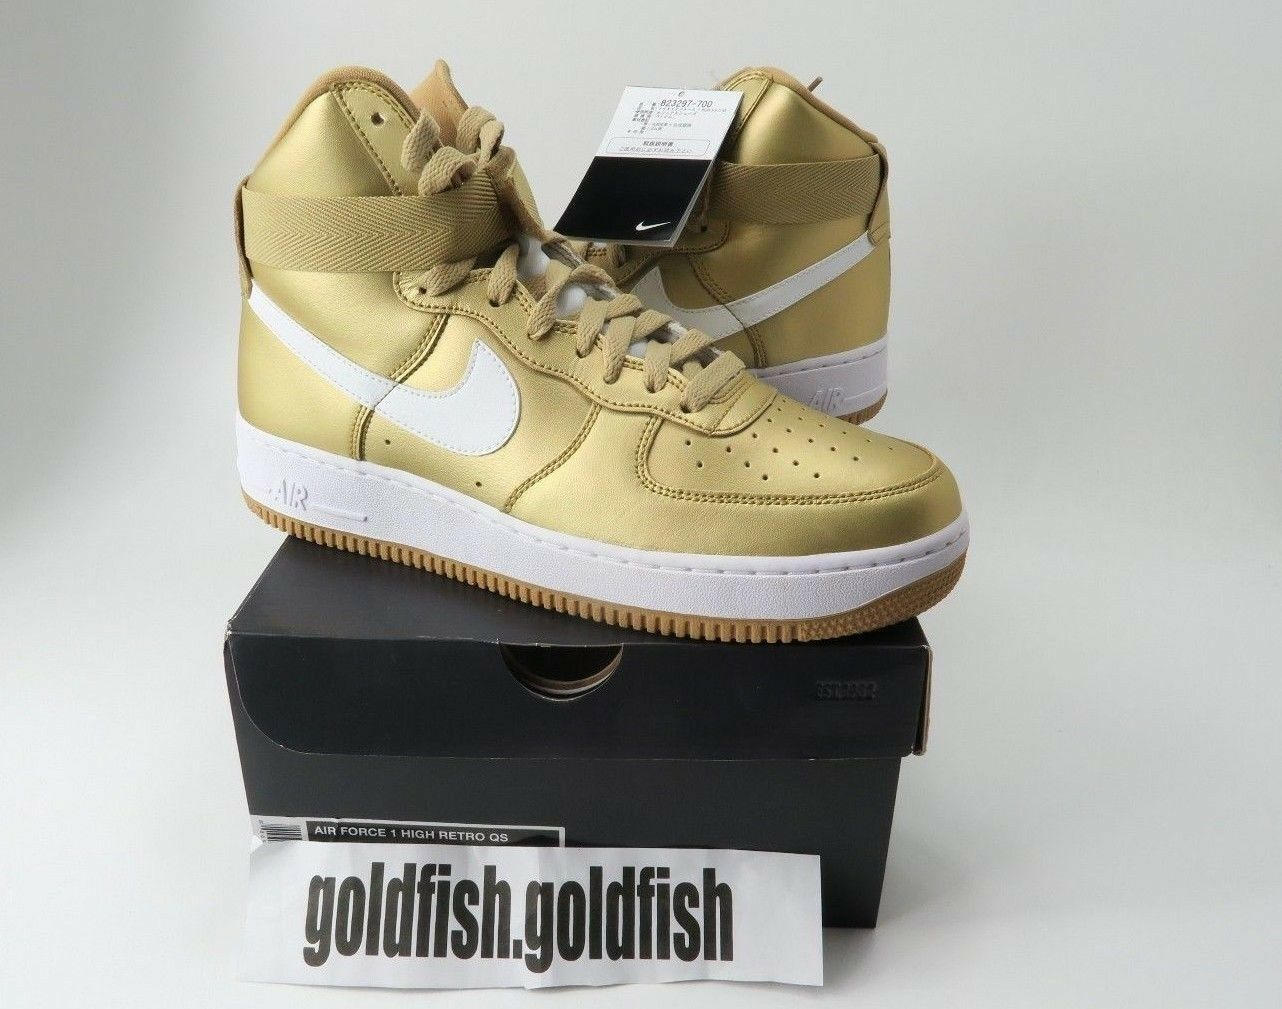 DS NIKE AIR FORCE 1 HIGH RETRO QS METALLIC GOLD 823297 700 The most popular shoes for men and women